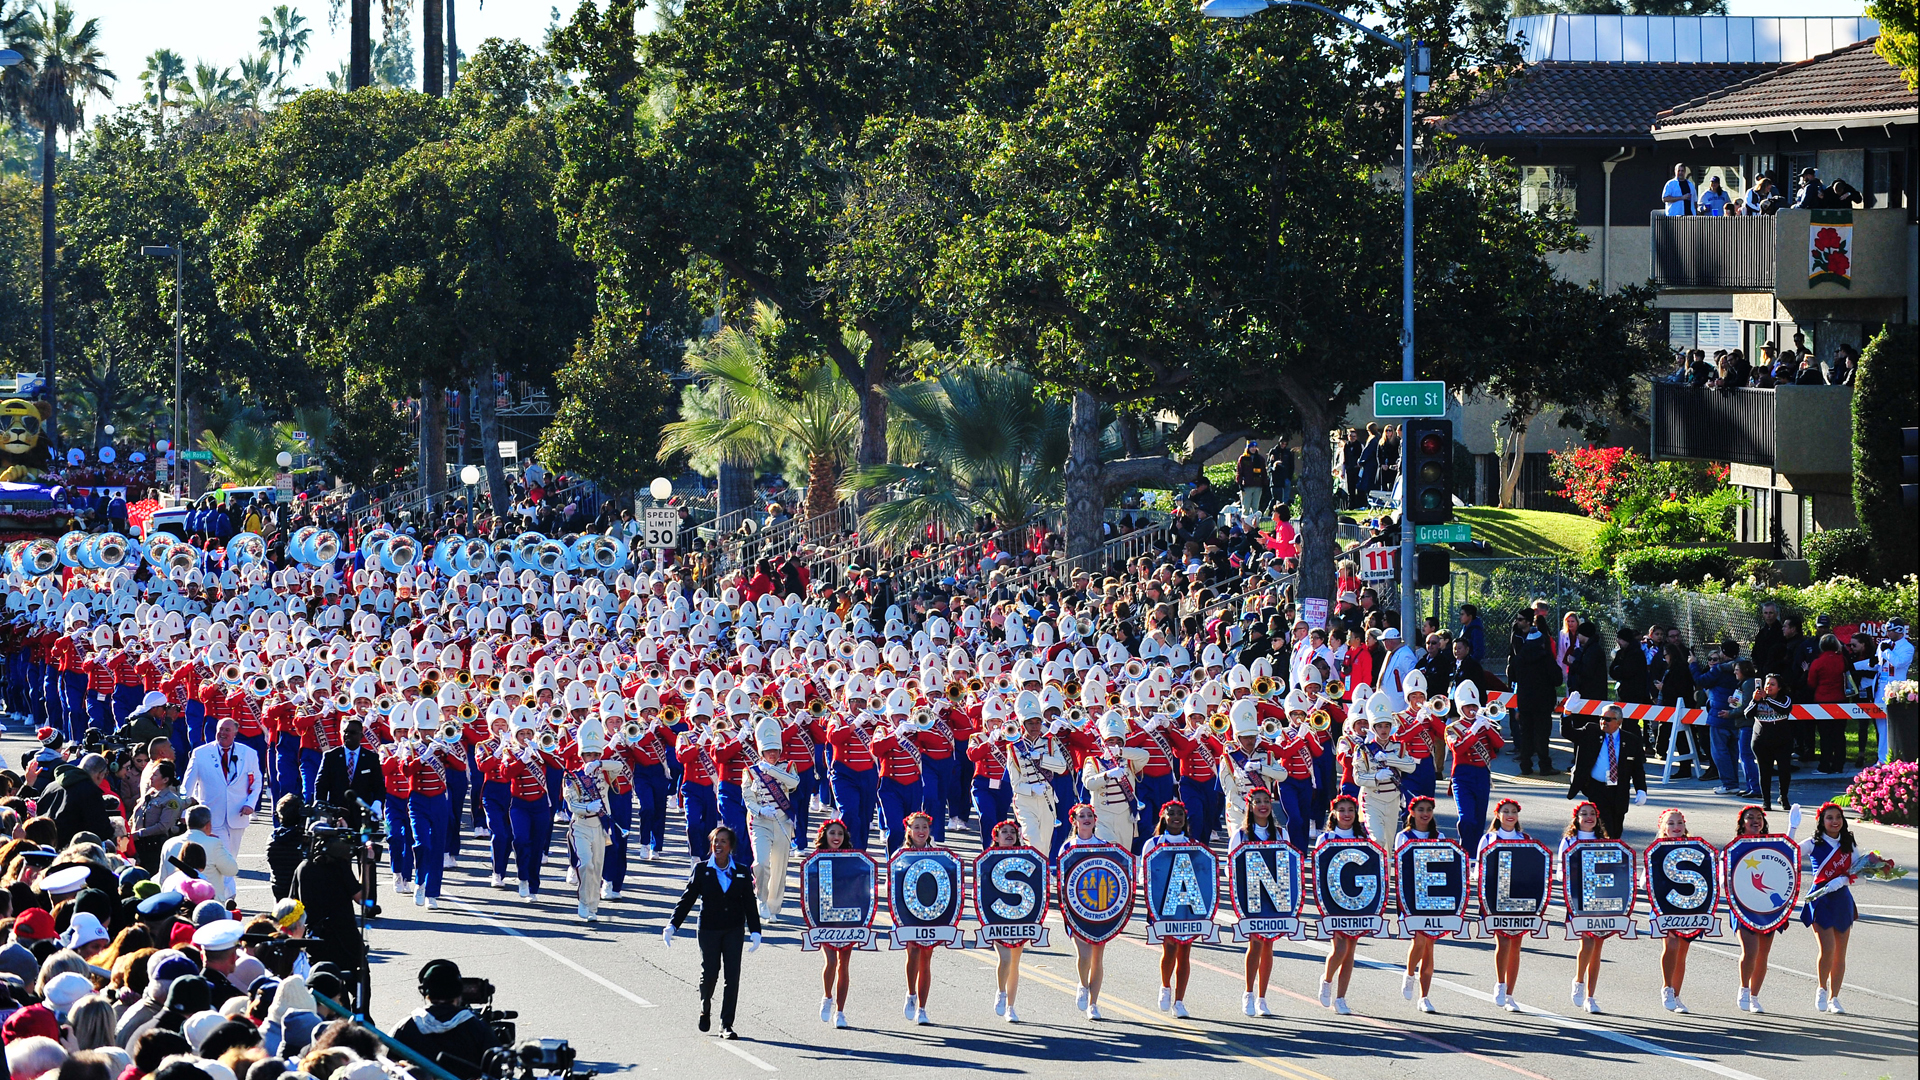 The Los Angeles Unified School District All City Honor Marching band participates in the 130th Rose Parade Presented by Honda on Jan. 1, 2019, in Pasadena, California. (Credit: Jerod Harris/Getty Images)